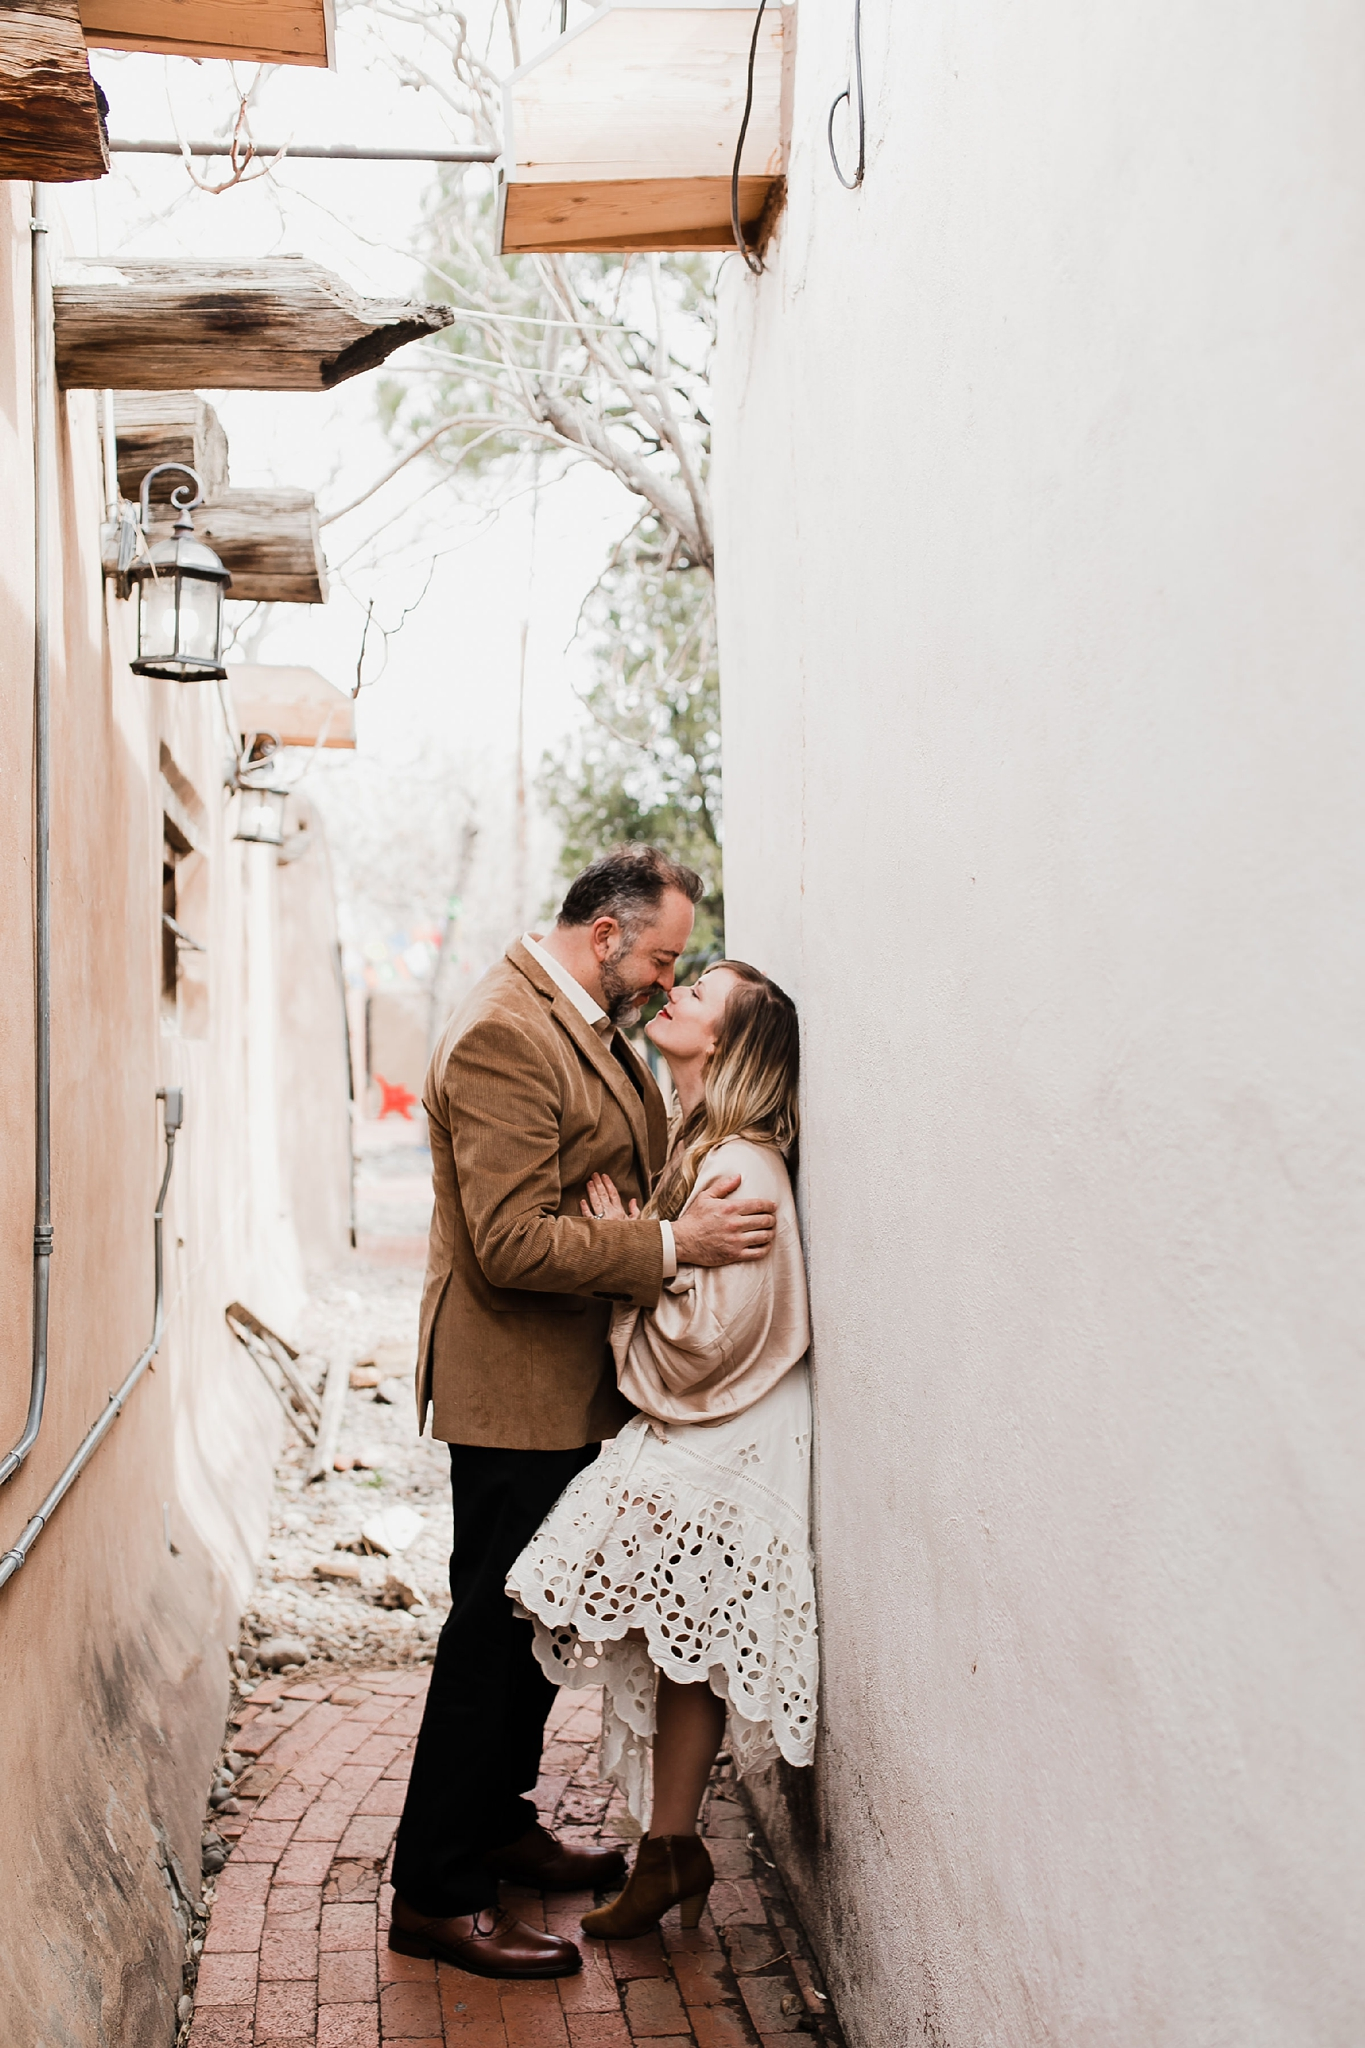 Alicia+lucia+photography+-+albuquerque+wedding+photographer+-+santa+fe+wedding+photography+-+new+mexico+wedding+photographer+-+new+mexico+wedding+-+new+mexico+engagement+-+albuquerque+engagement+-+old+town+engagement_0027.jpg